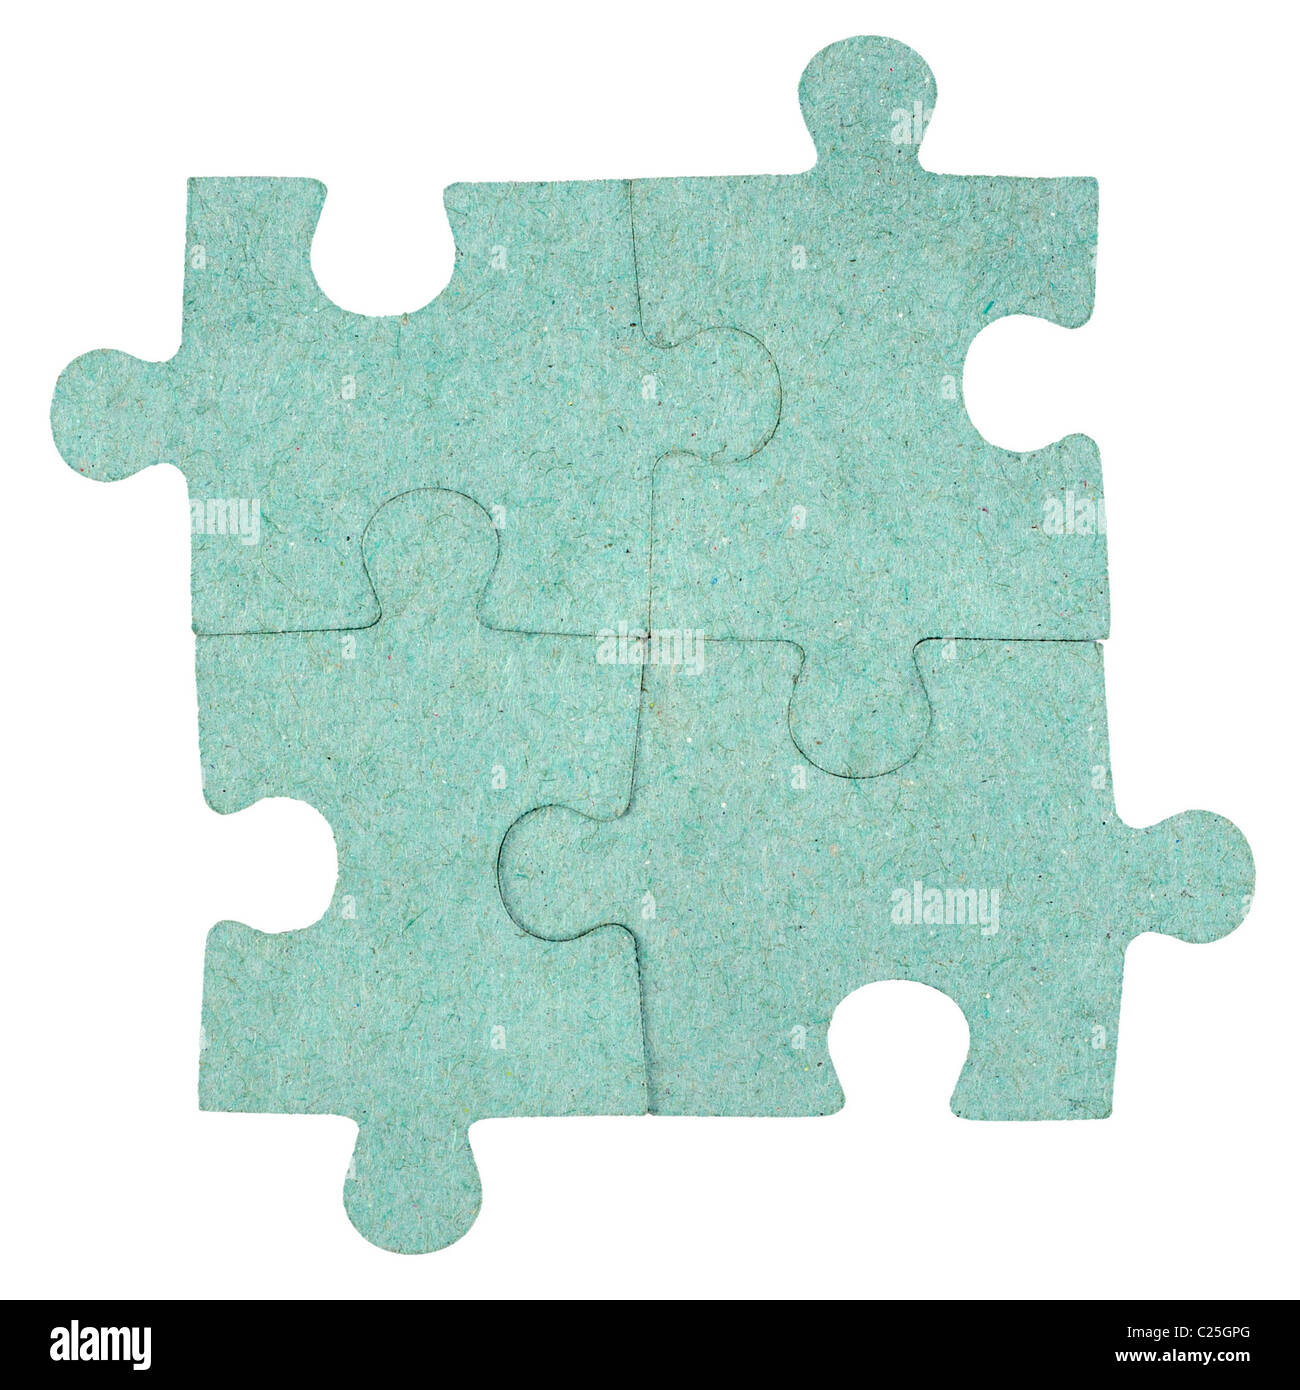 Jigsaw puzzle background - Stock Image